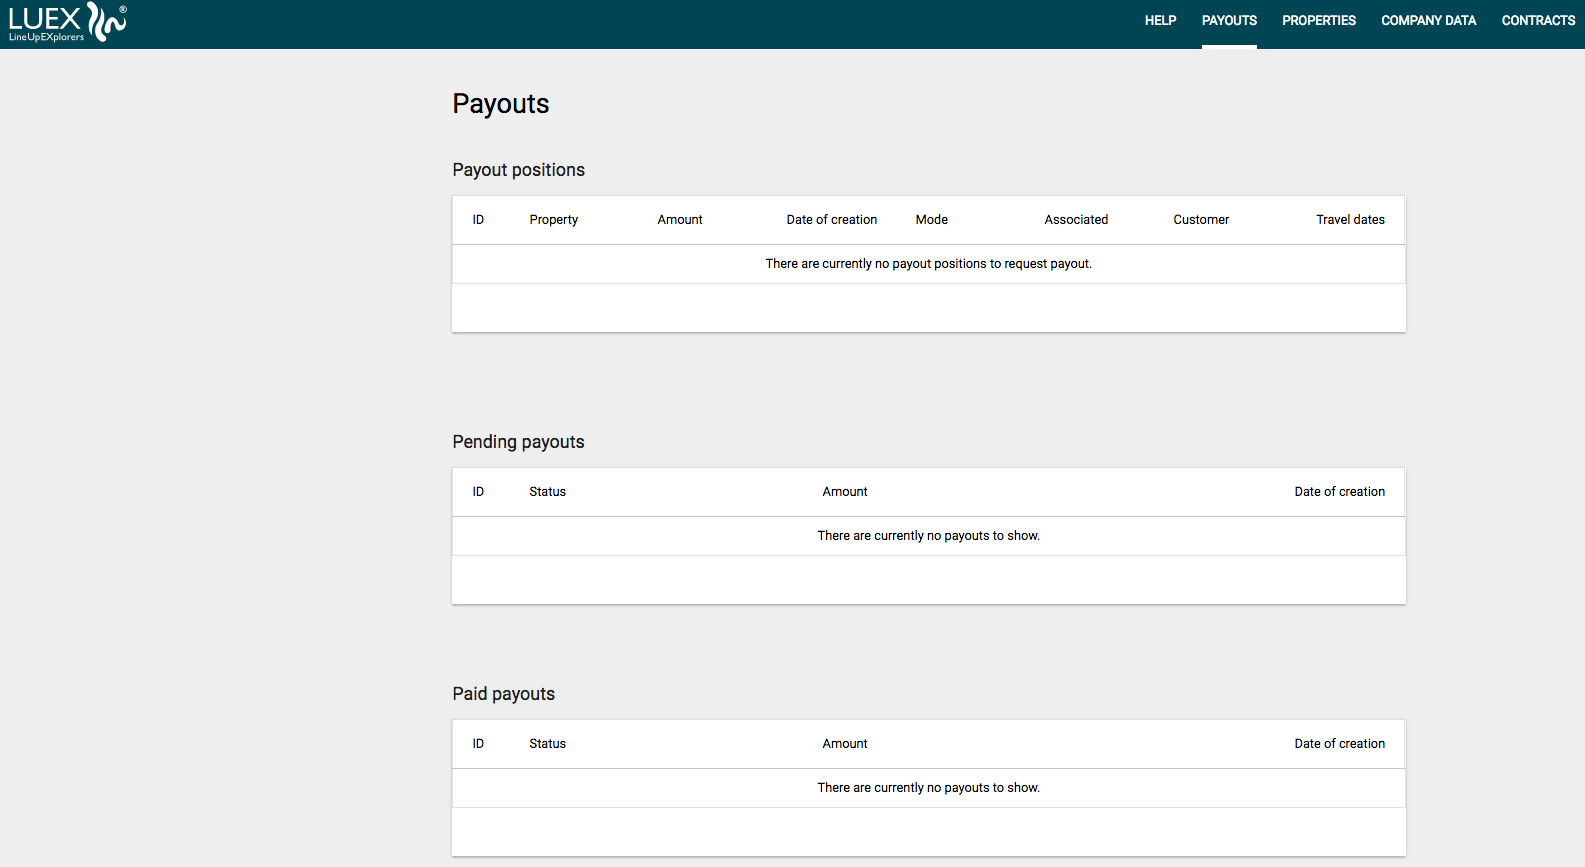 Overview of payouts in LUEX Supplier Central